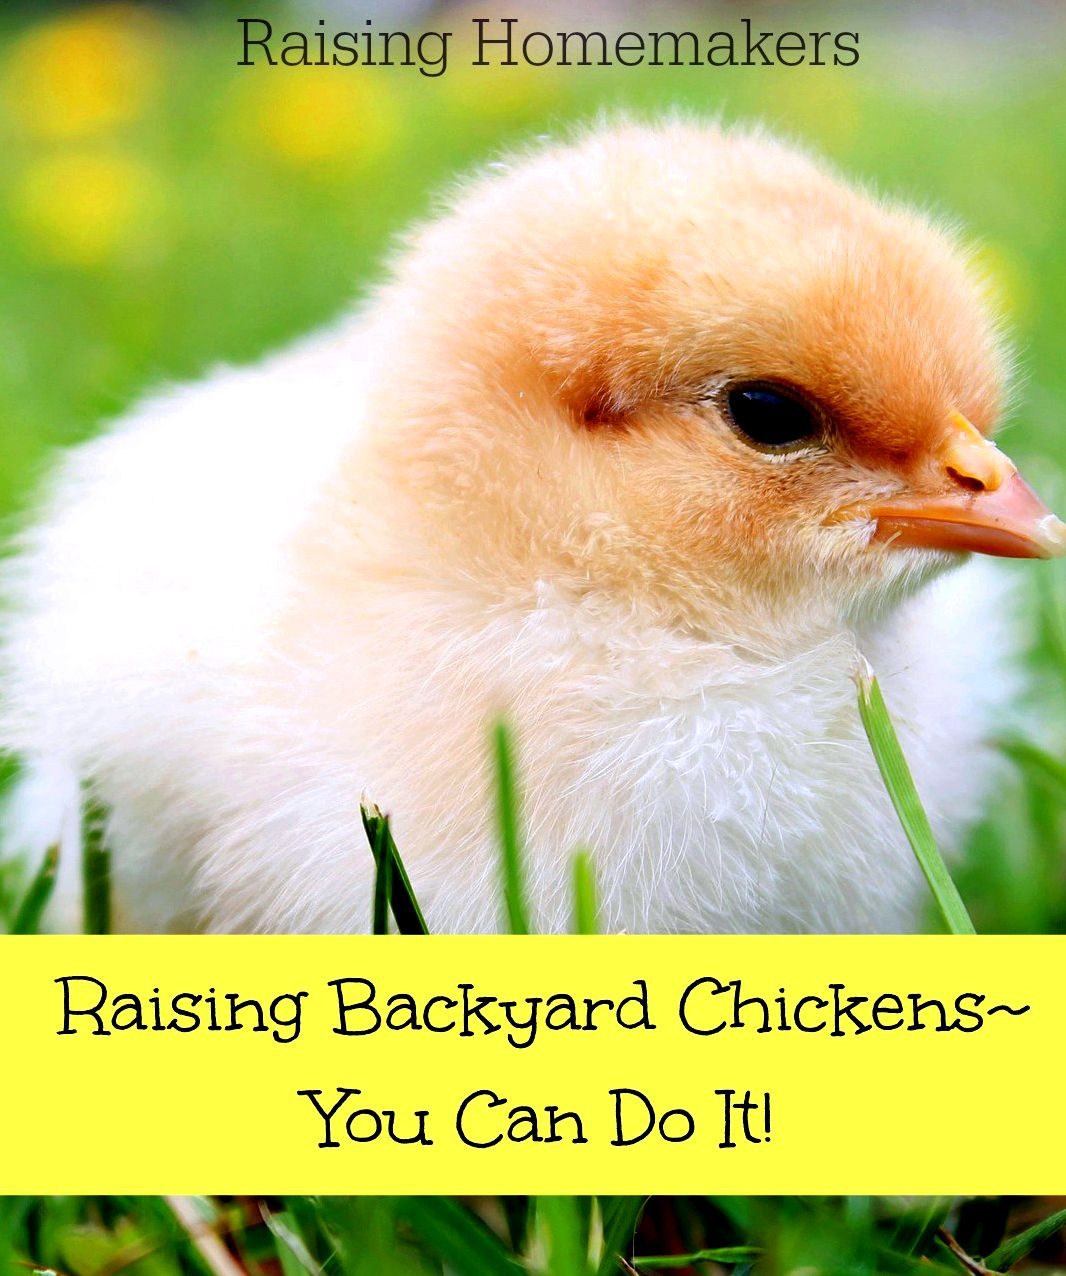 How you can raise chickens - about raising organic, backyard chickens the duration of